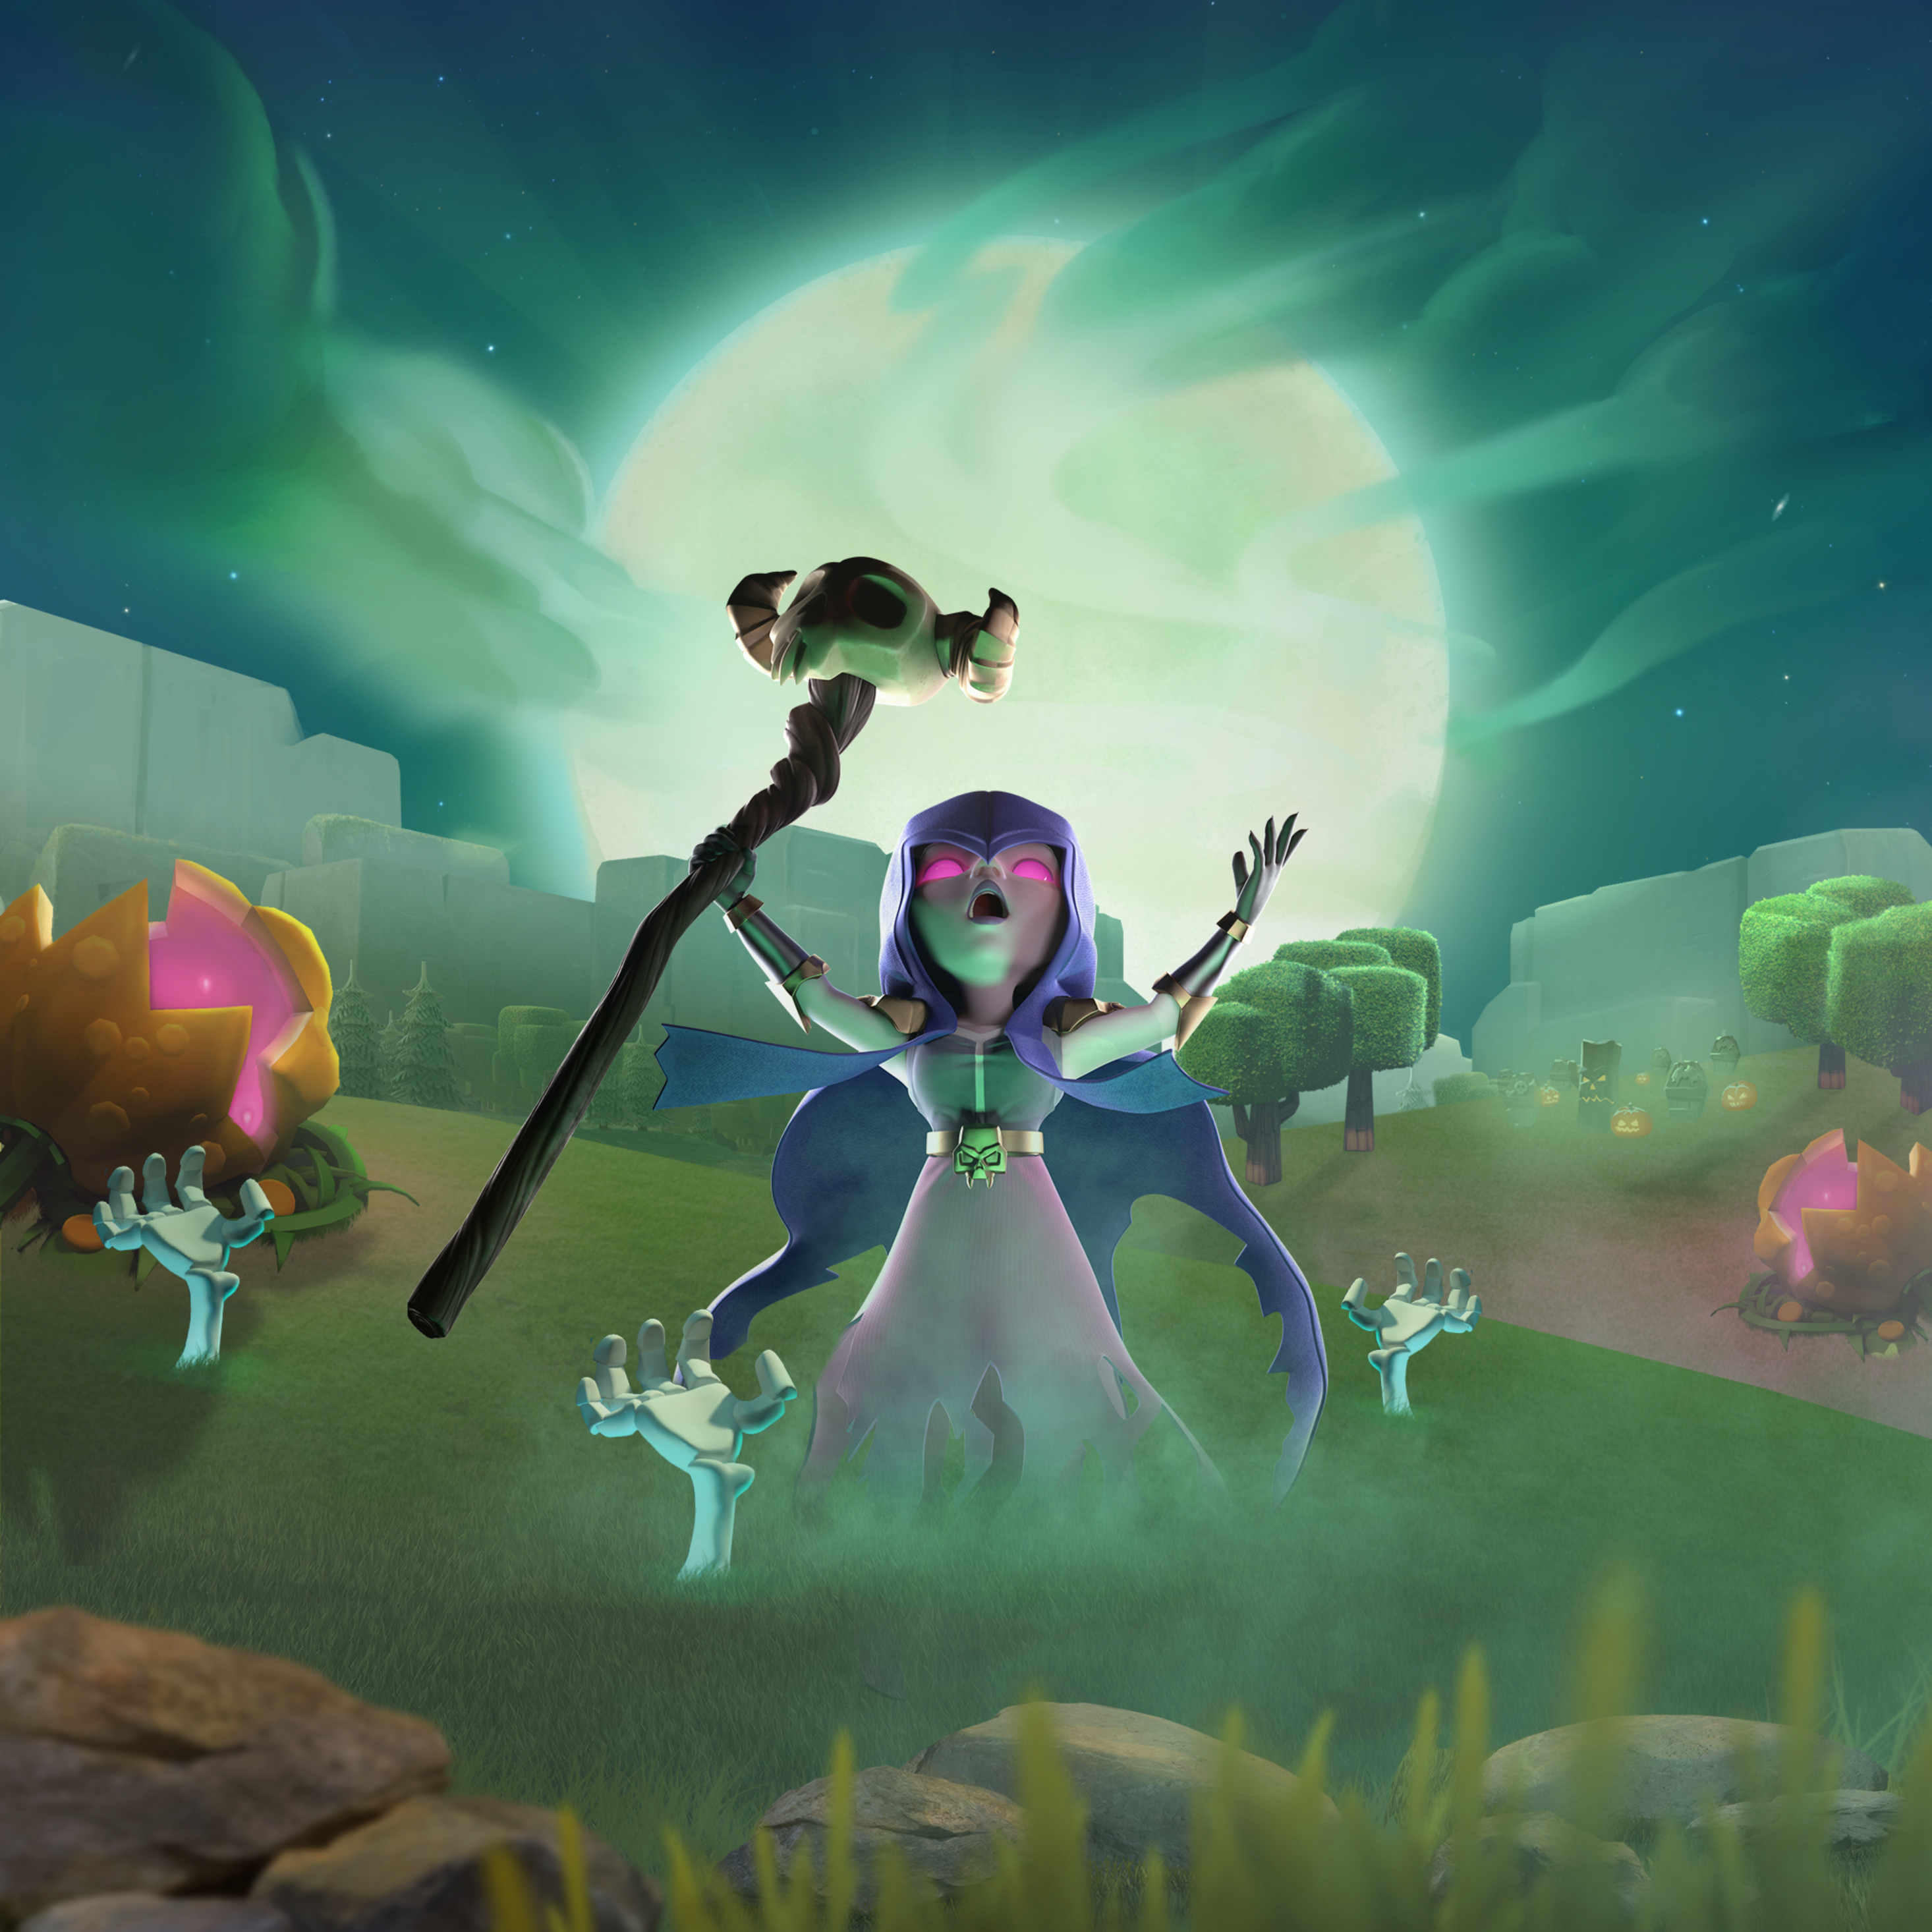 witch-clash-of-clans-image.jpg